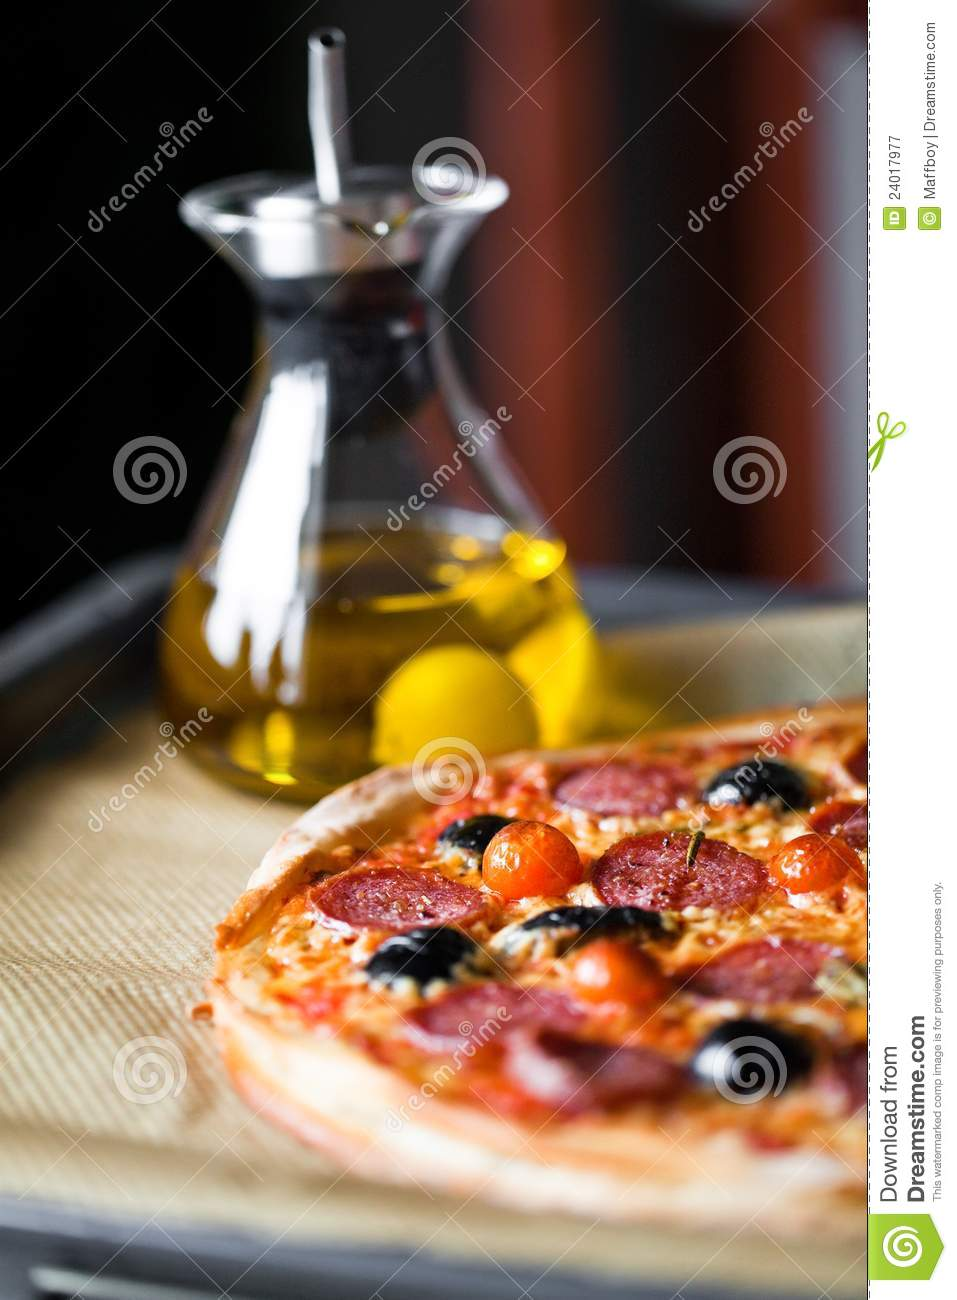 pizza with olive oil royalty free stock photography image 24017977. Black Bedroom Furniture Sets. Home Design Ideas